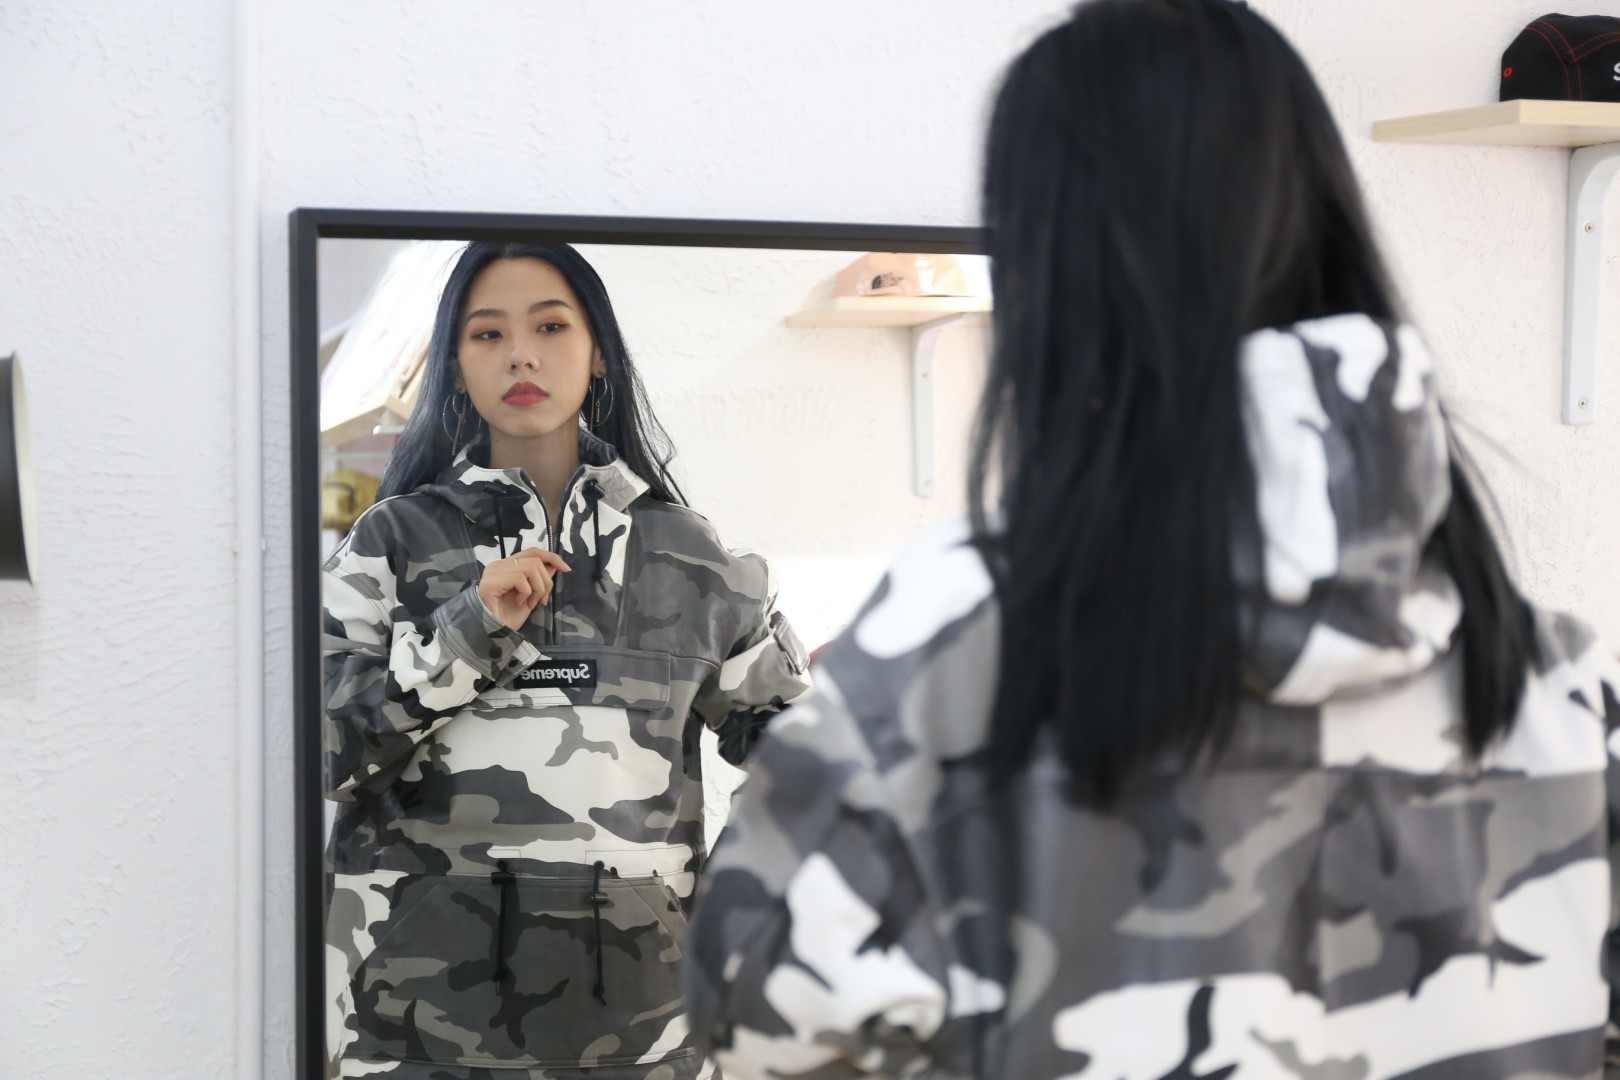 f04e02b04837 Chinese millennials embrace Supreme streetwear brand, and counterfeiters  step in to feed demand | South China Morning Post